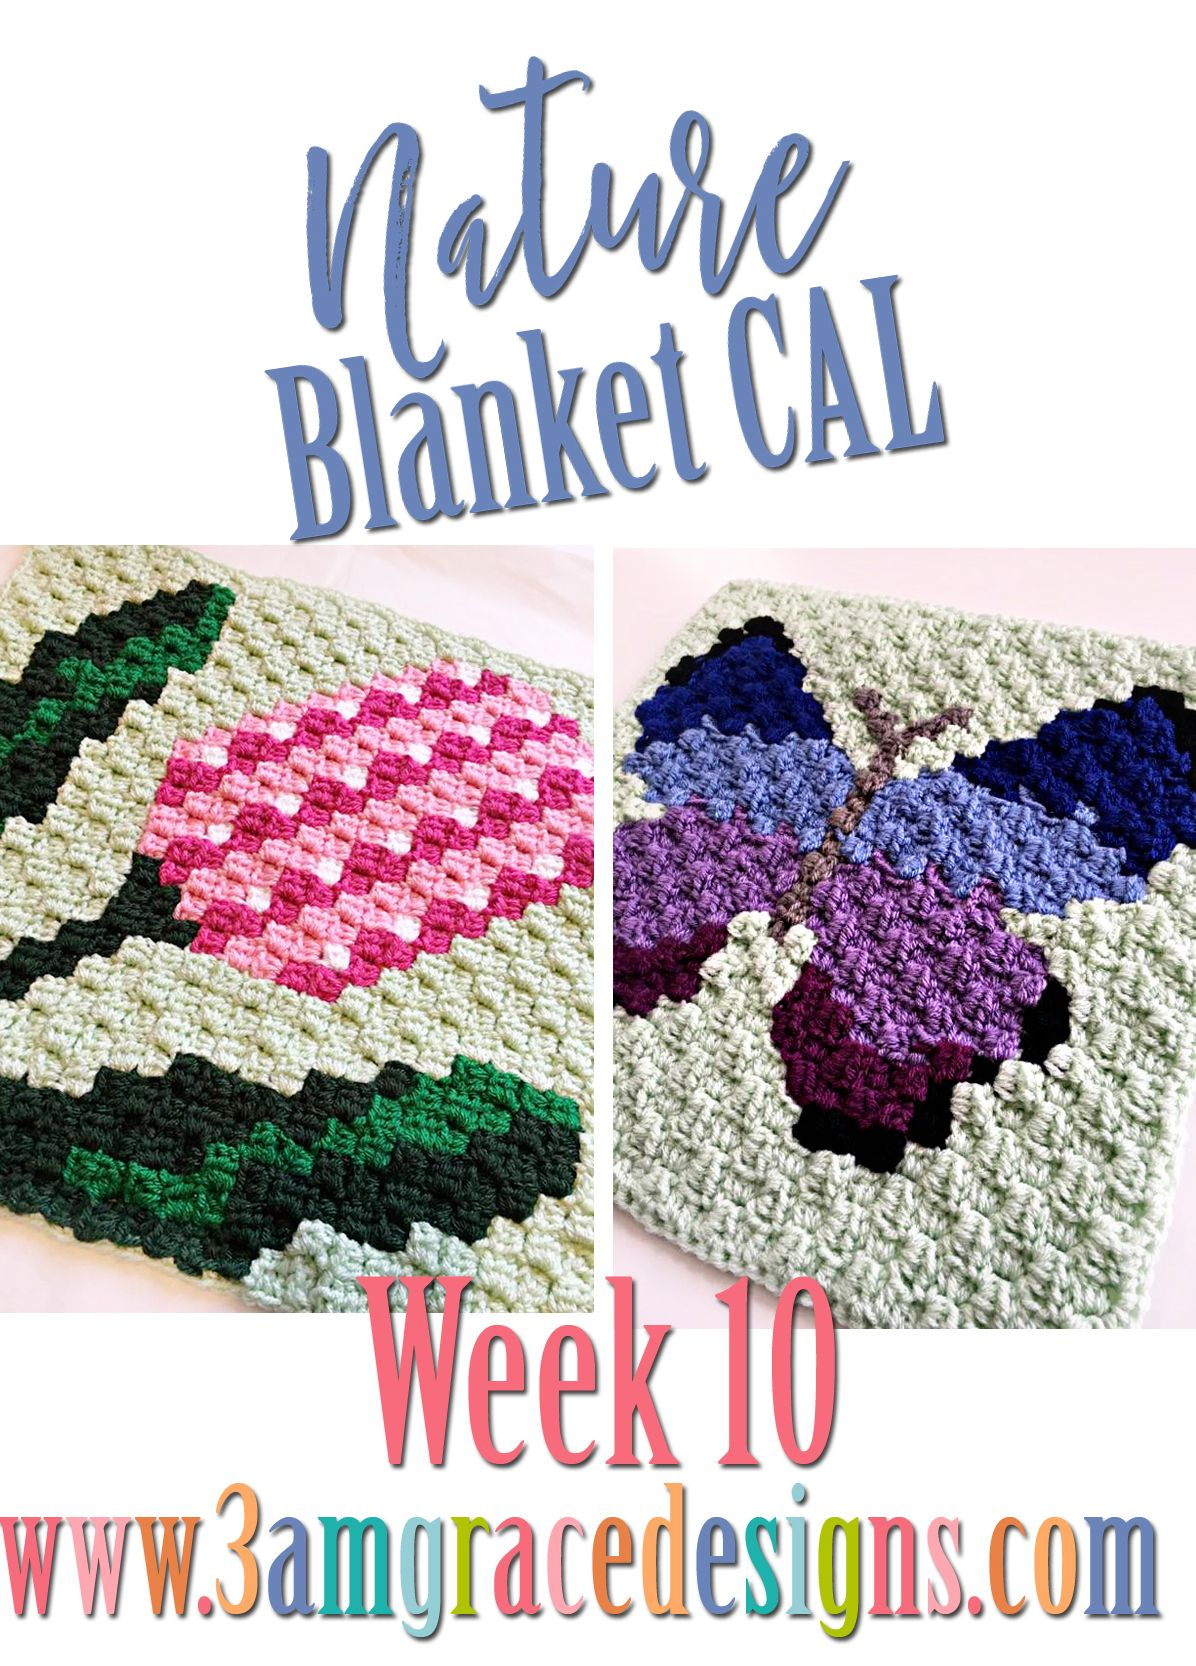 Nature Blanket C2c Cal Week 10 Free Crochet Pattern Your